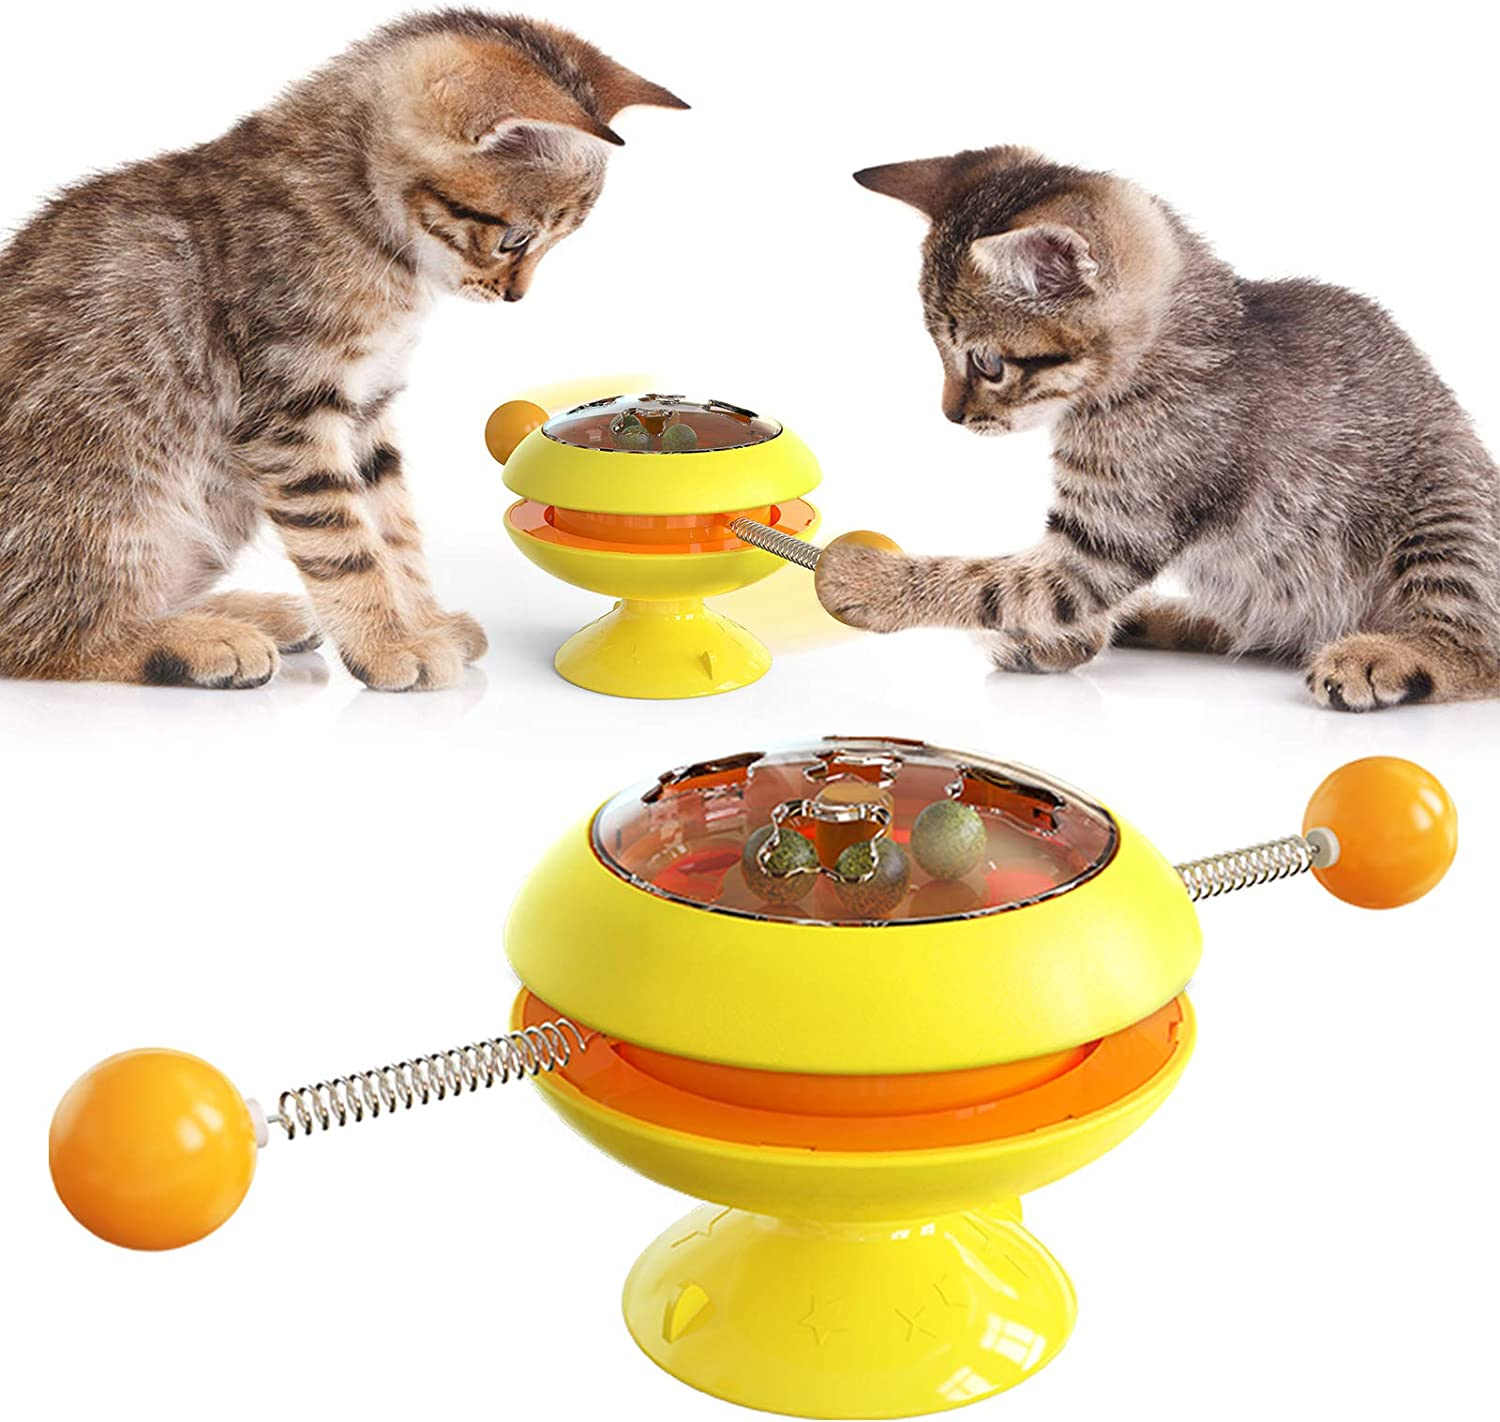 TLUUBONY Spasm price Cat Toy Max 86% OFF Balls Interactive S Strong with Catnip